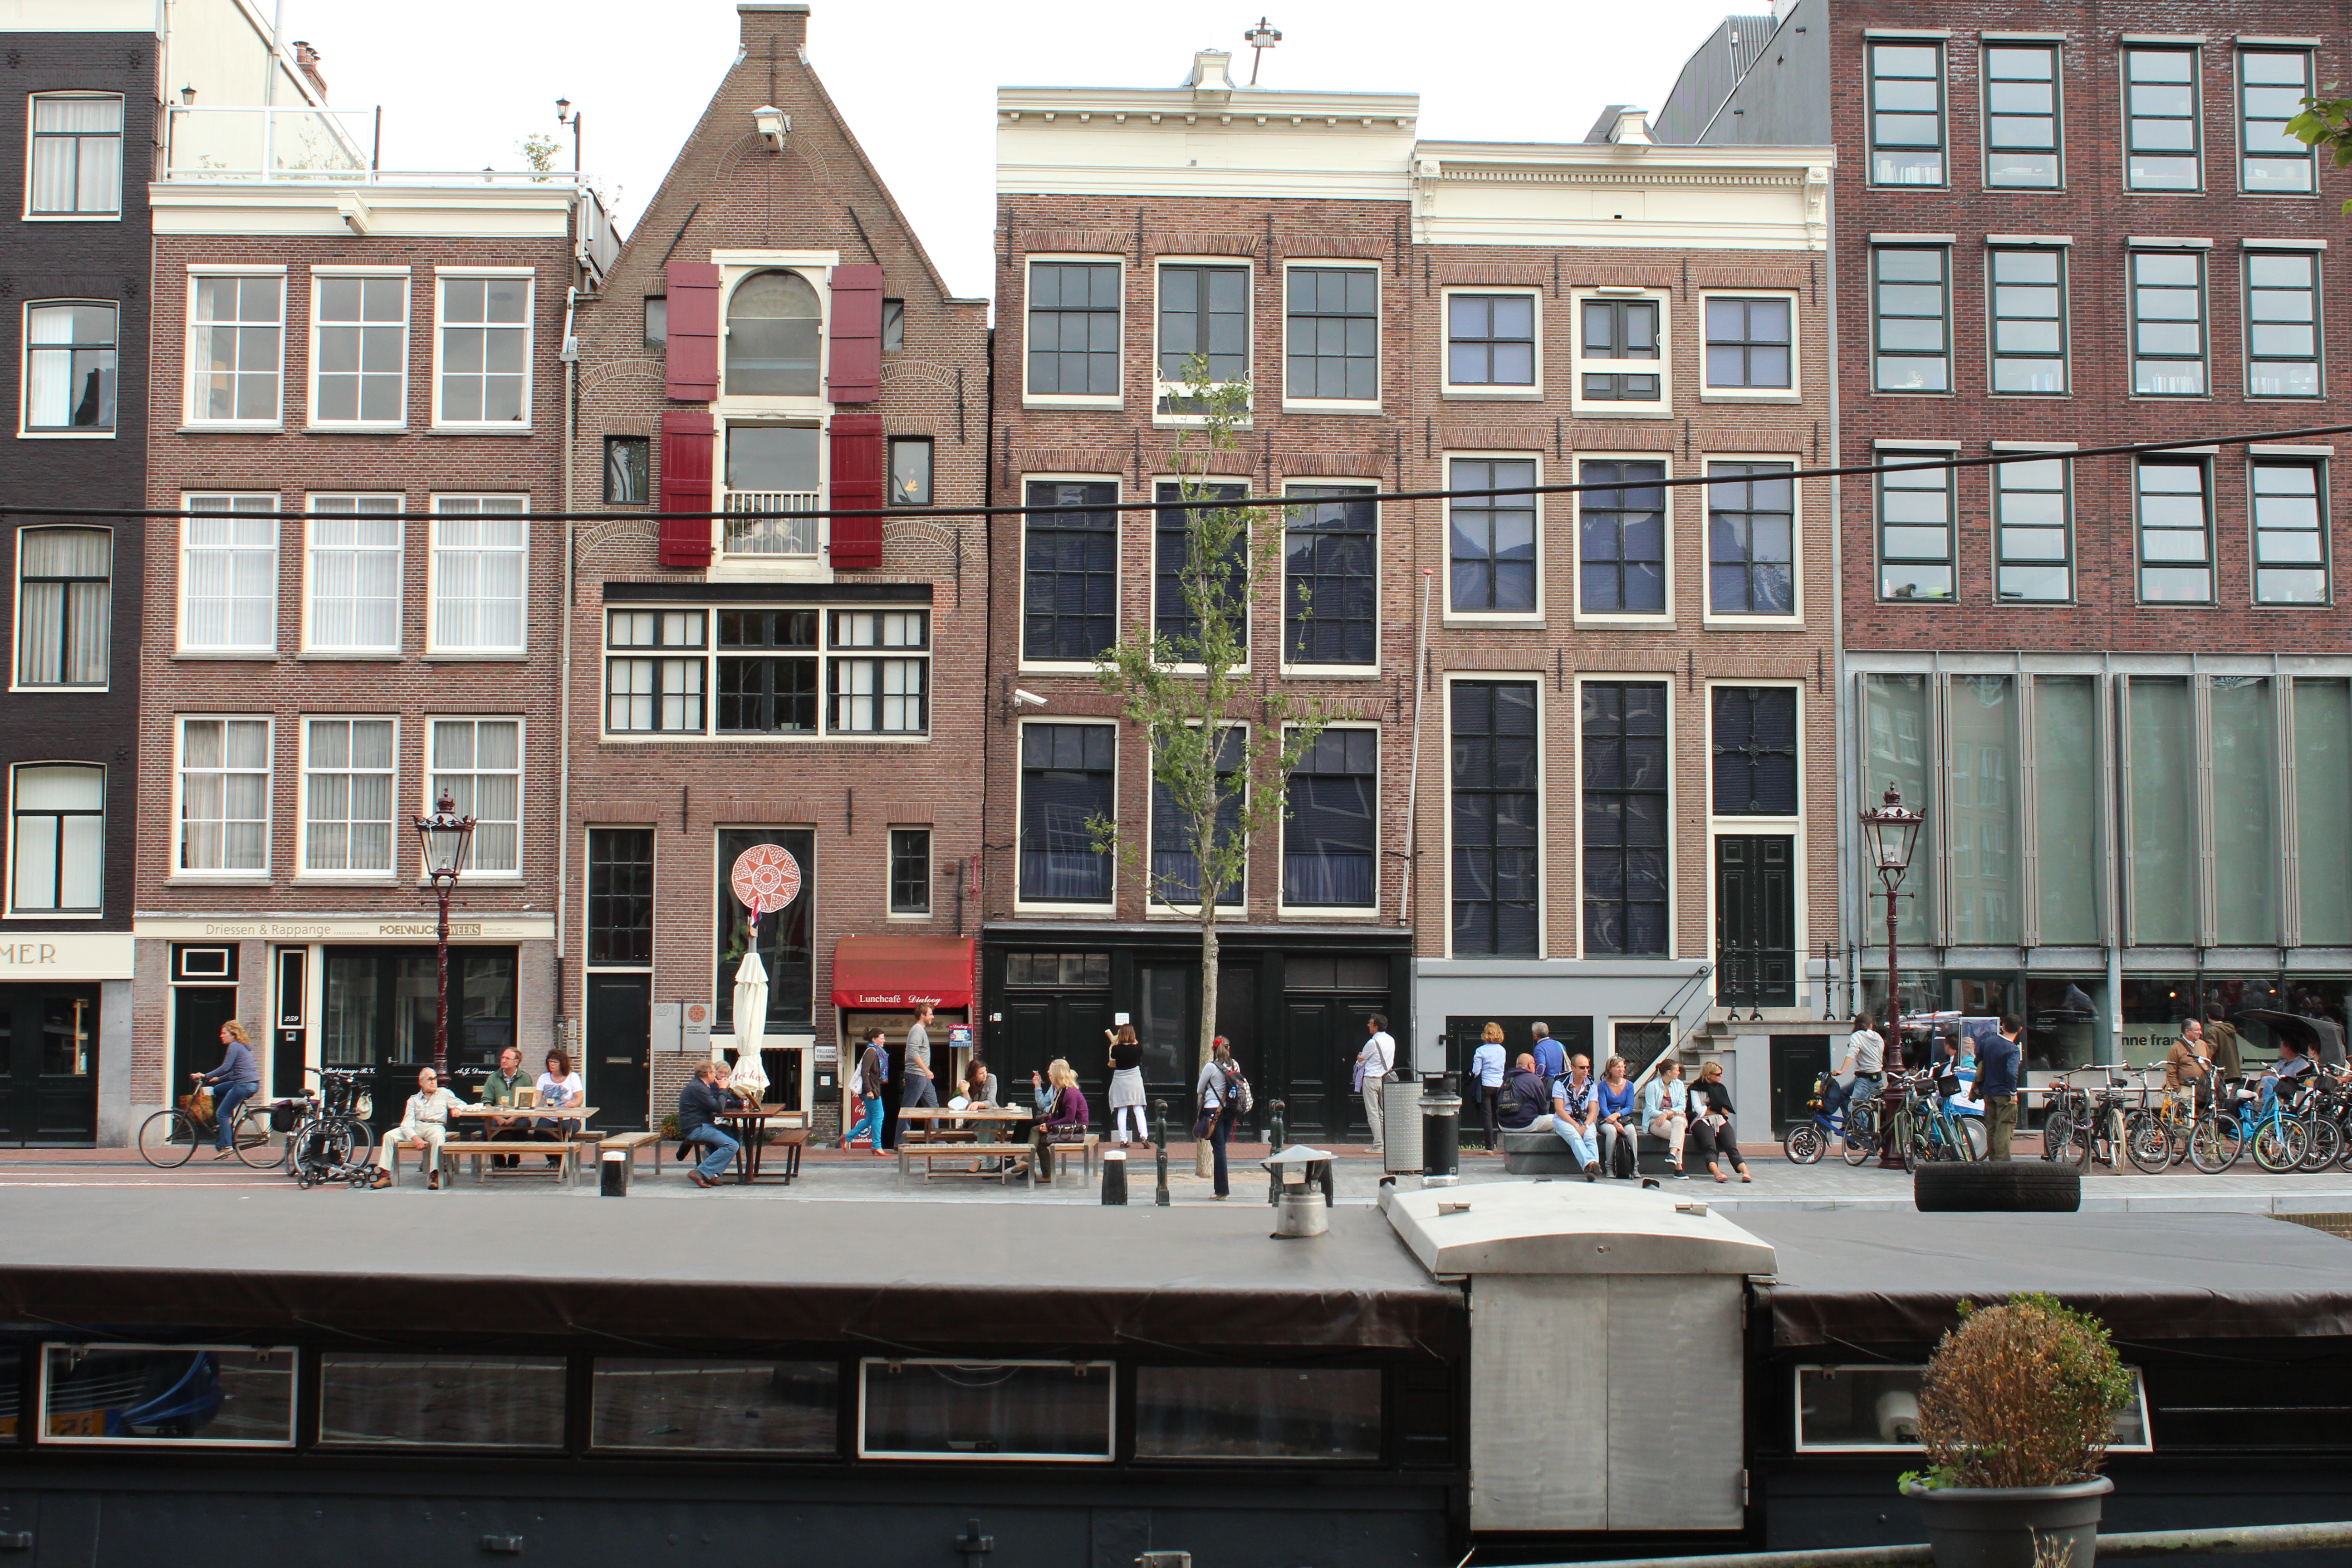 Anne frank 39 s house in amsterdam and the power of void - Casa anna frank ...